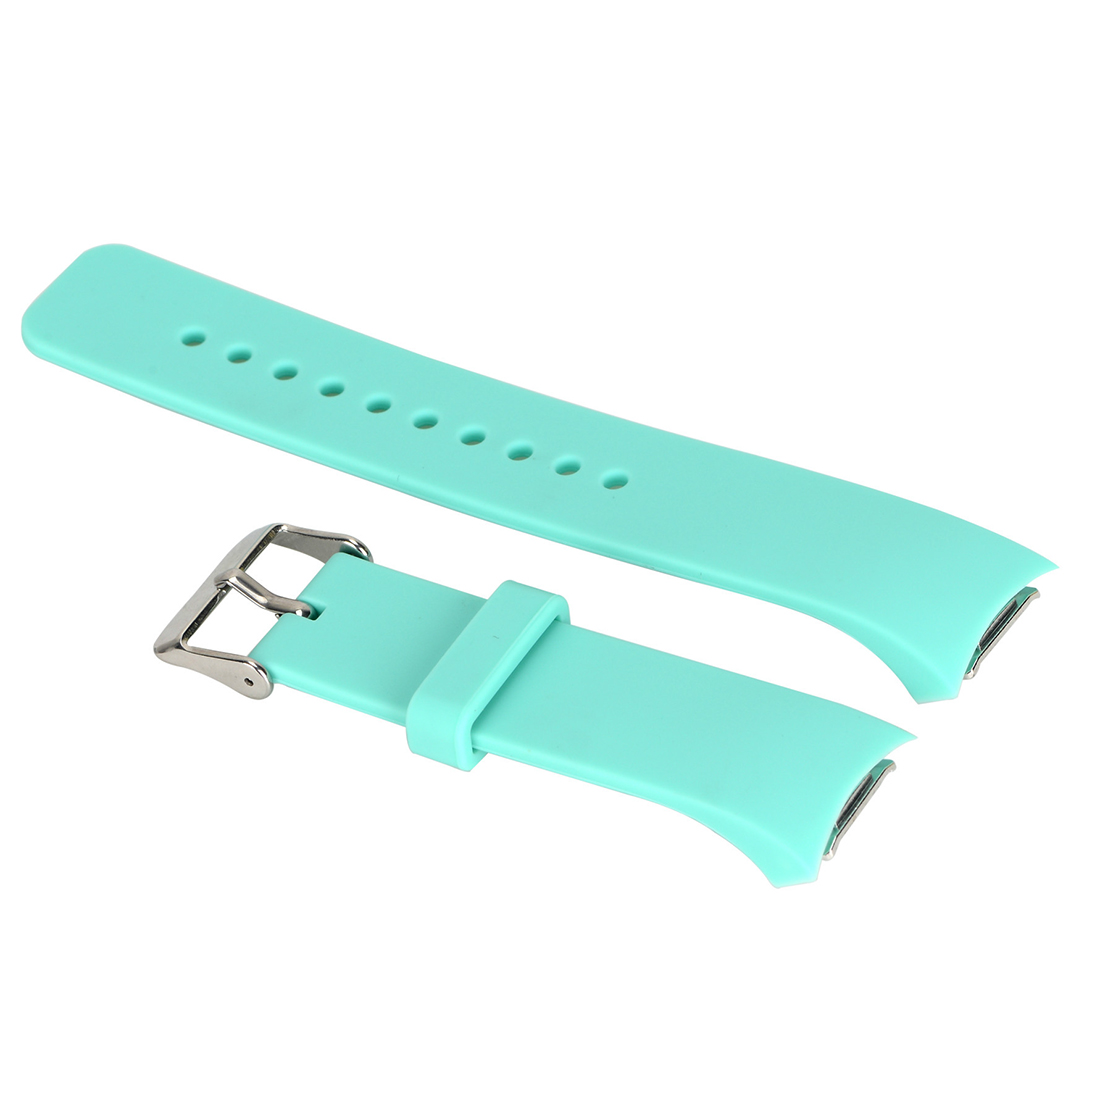 Luxury Silicone Watch Band Strap for Samsung Galaxy S2 Gear SM-R720 Lake Green eache silicone watch band strap replacement watch band can fit for swatch 17mm 19mm men women